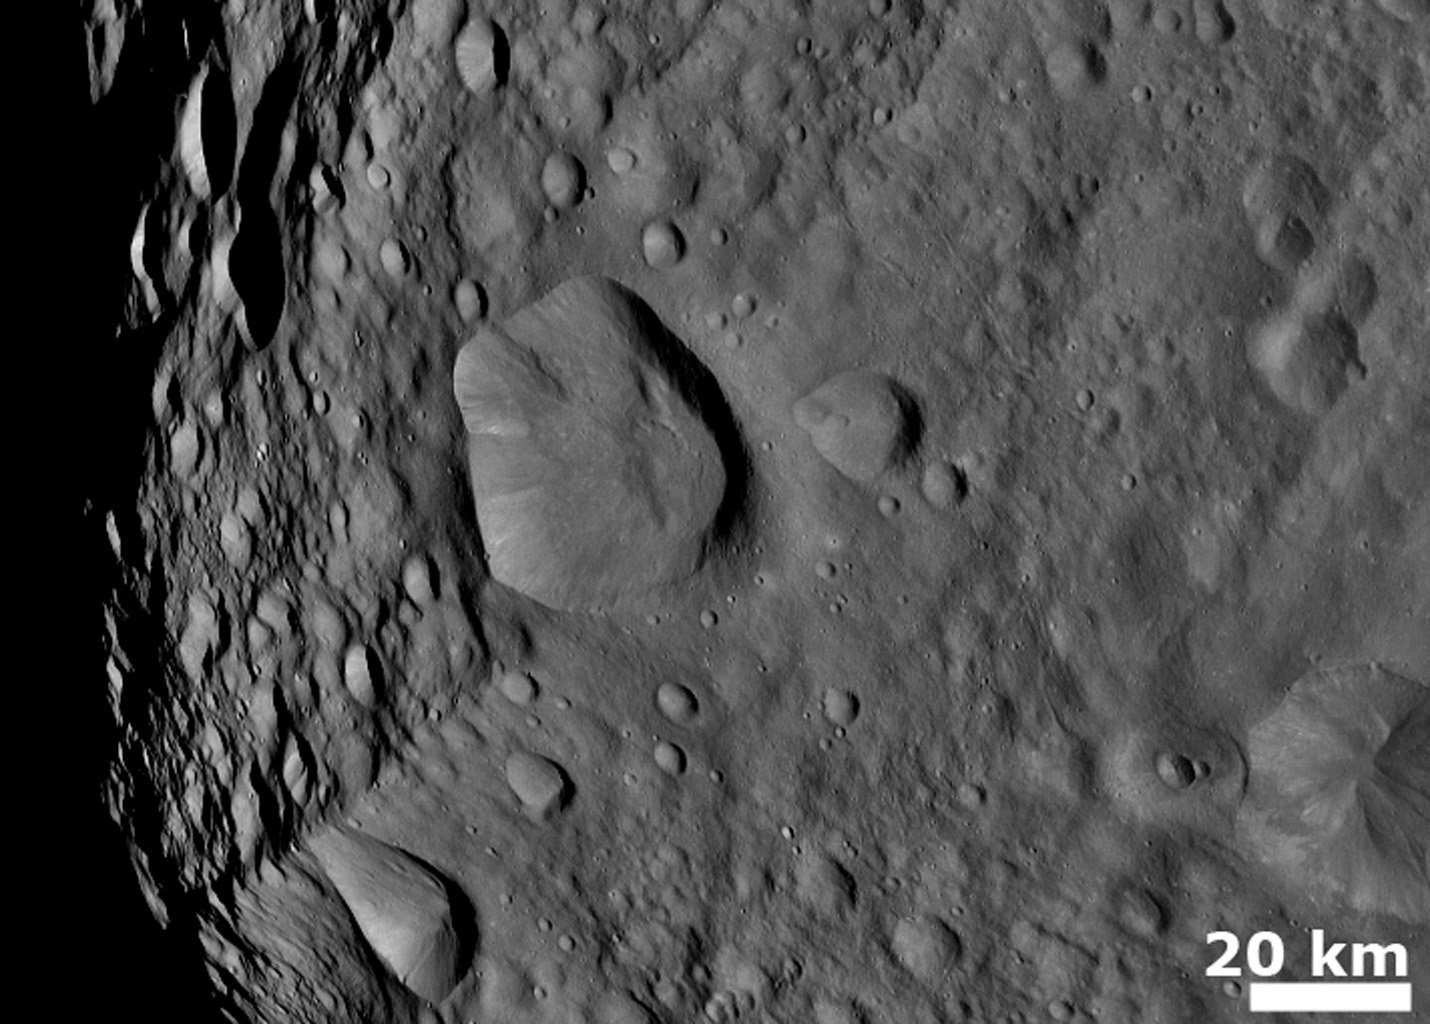 NASA's Dawn spacecraft obtained this image showing cratered terrain with hills and ridges on Vesta's surface on August 6, 2011. This image was taken through the framing camera's clear filter aboard the spacecraft.